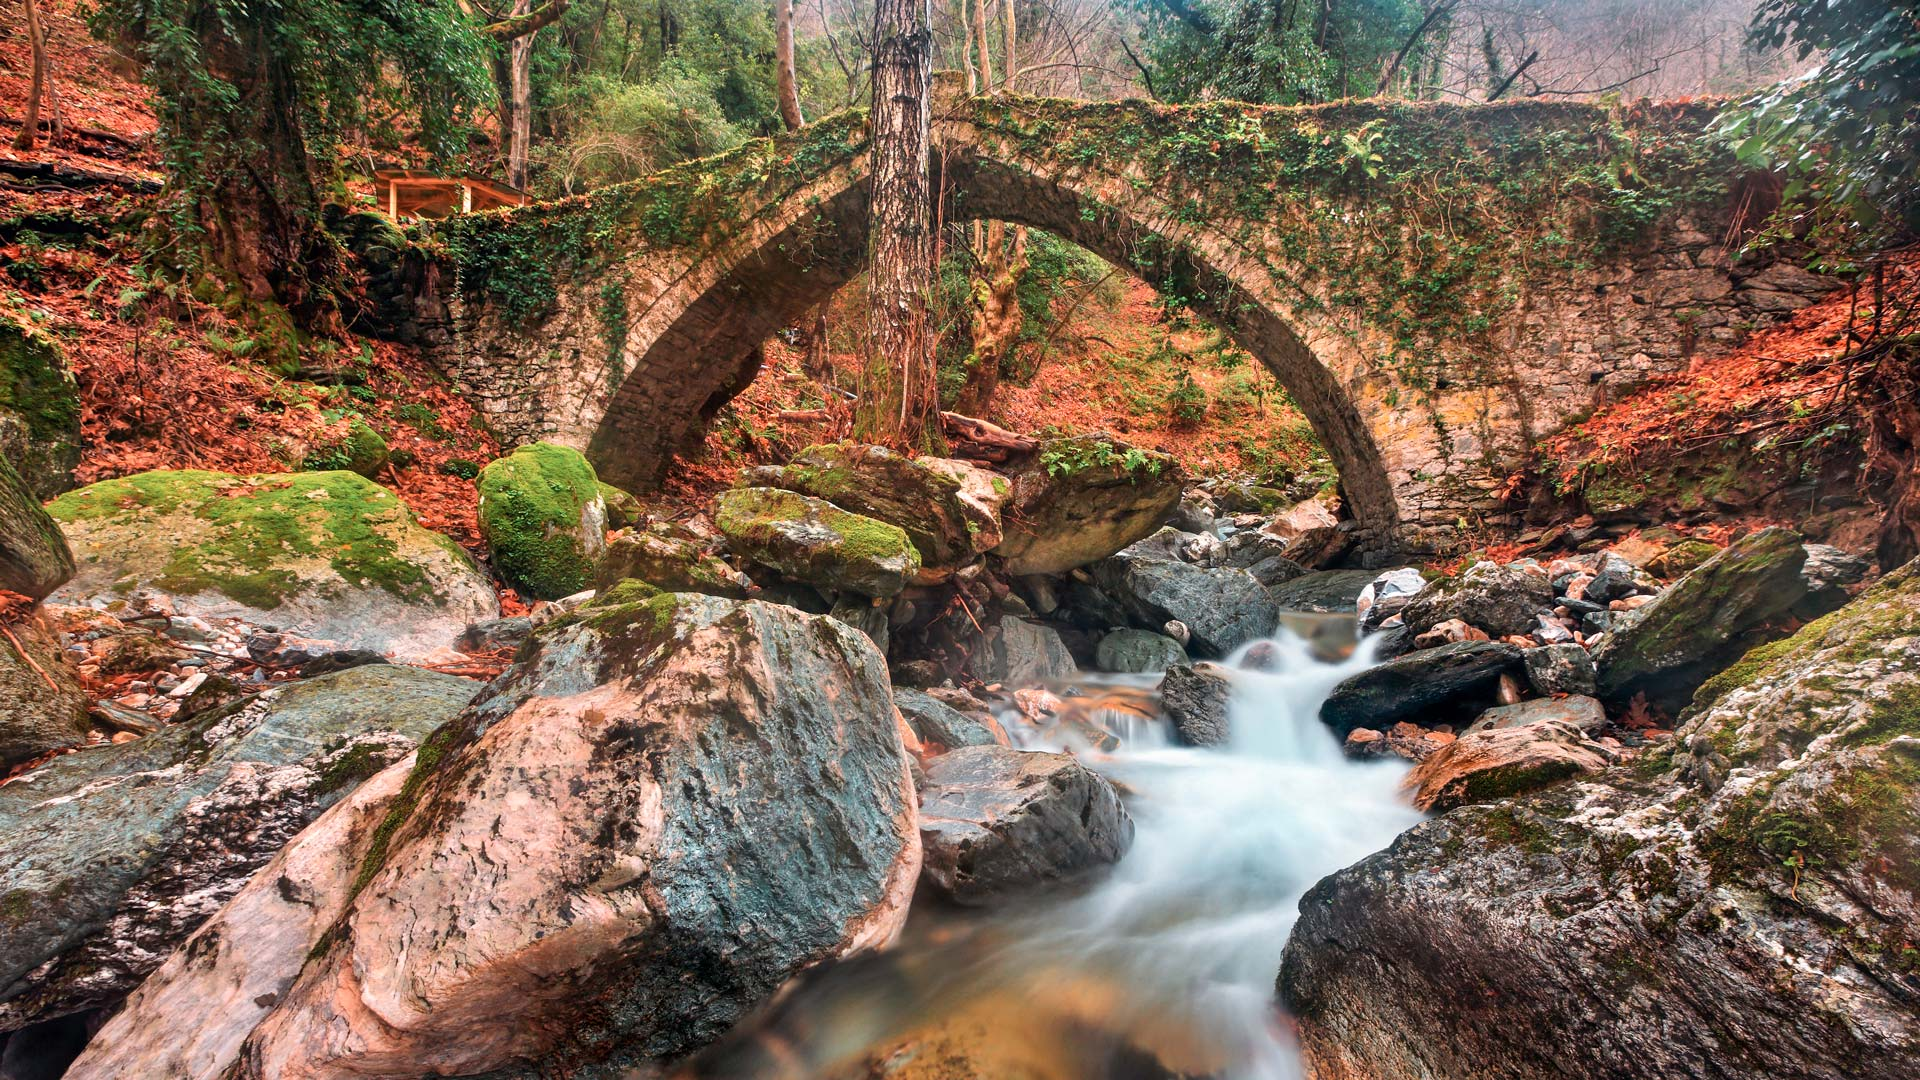 The old stone bridge (constructed in 1787) close to Tsangarada village, Pelion mountain